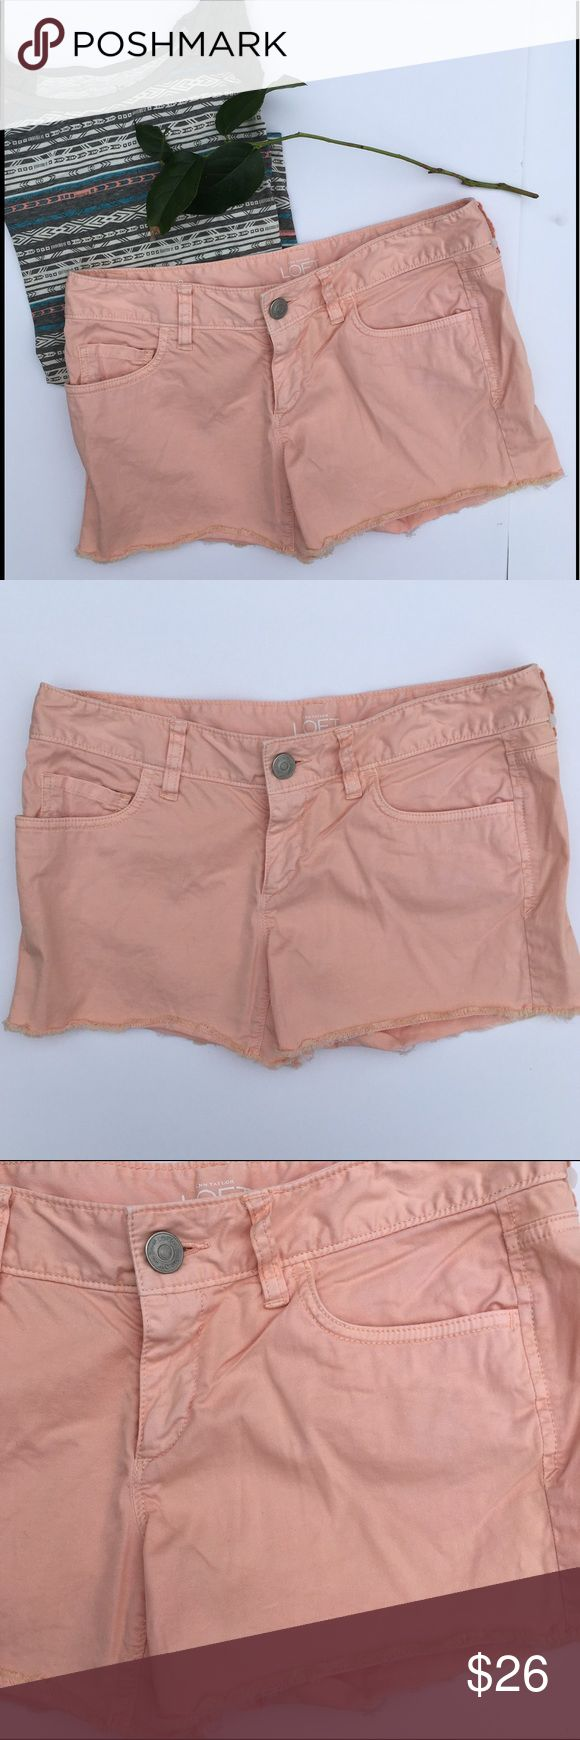 Anne Taylor Loft peachy colored shorts Women's Loft shorts are a peachy color. Has back and front pockets with frayed hemline. Size is 25/0. In great condition! LOFT Shorts